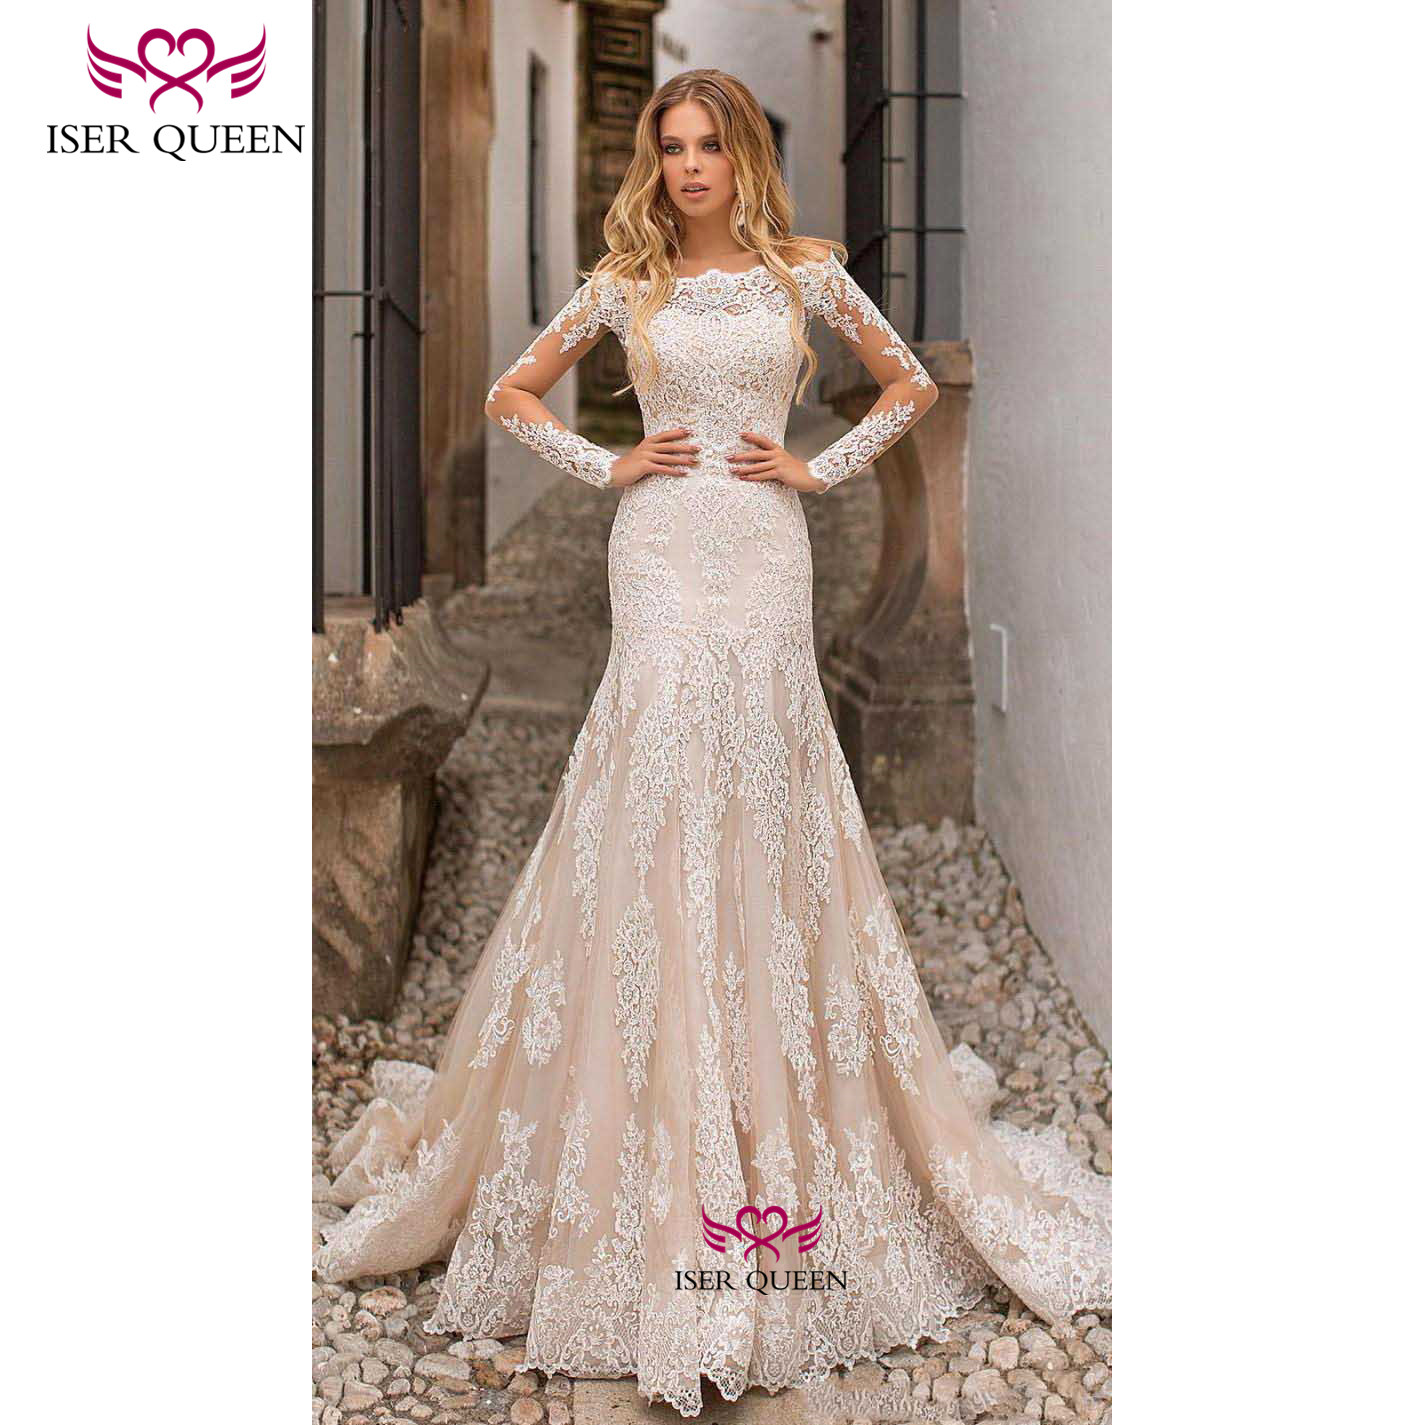 See-through Long Sleeves Embroidered Lace Wedding Dress 2 In 1 Mermaid Wedding Dresses Champagne Vestidos De Novia 2019 W0639